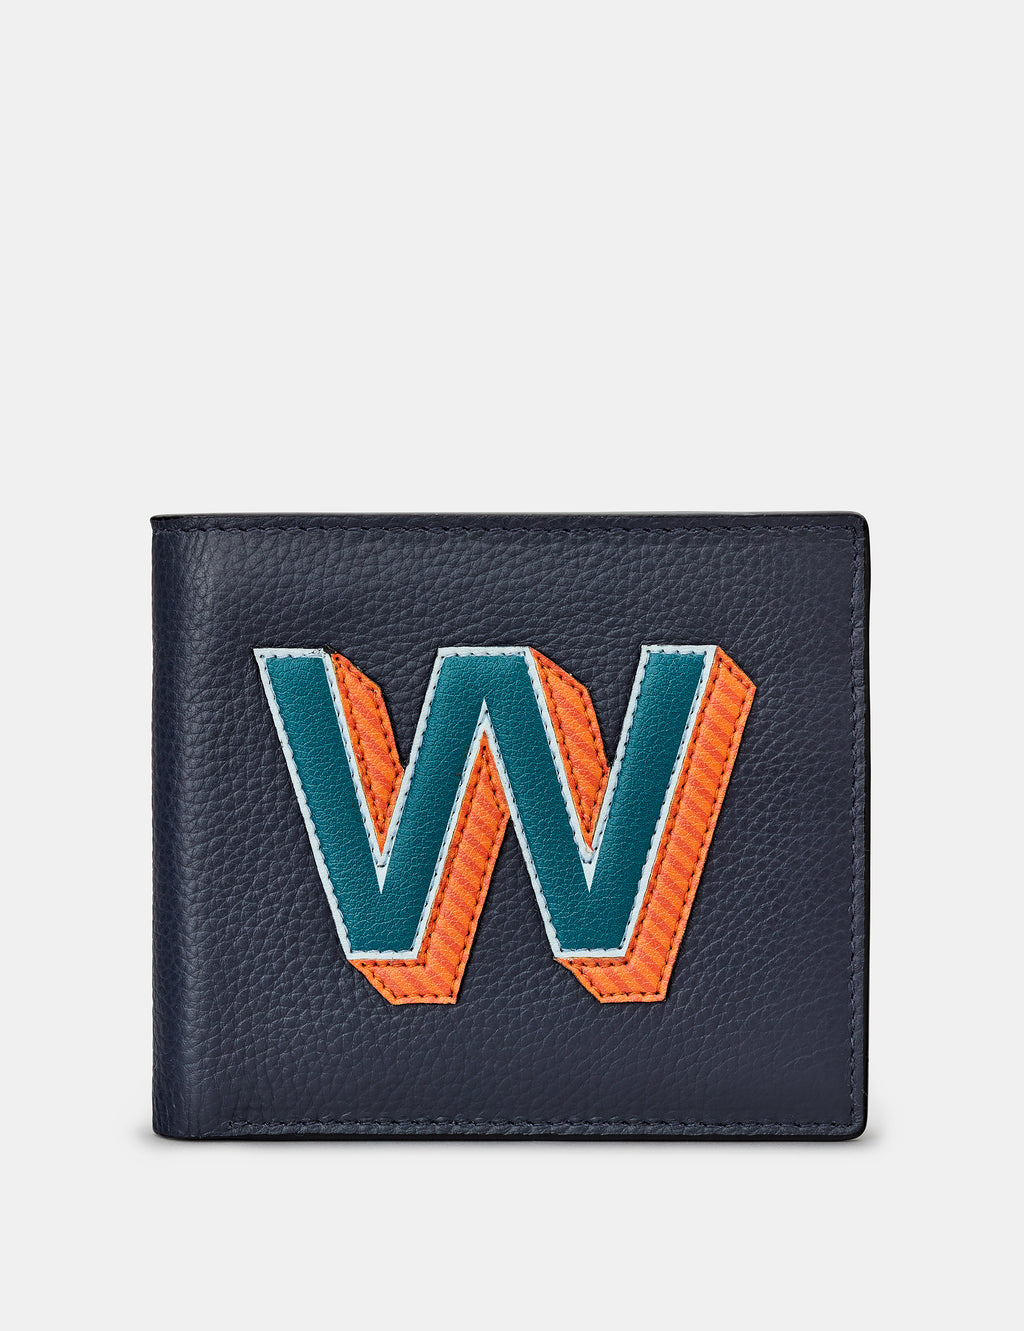 W Initial Navy Leather Wallet